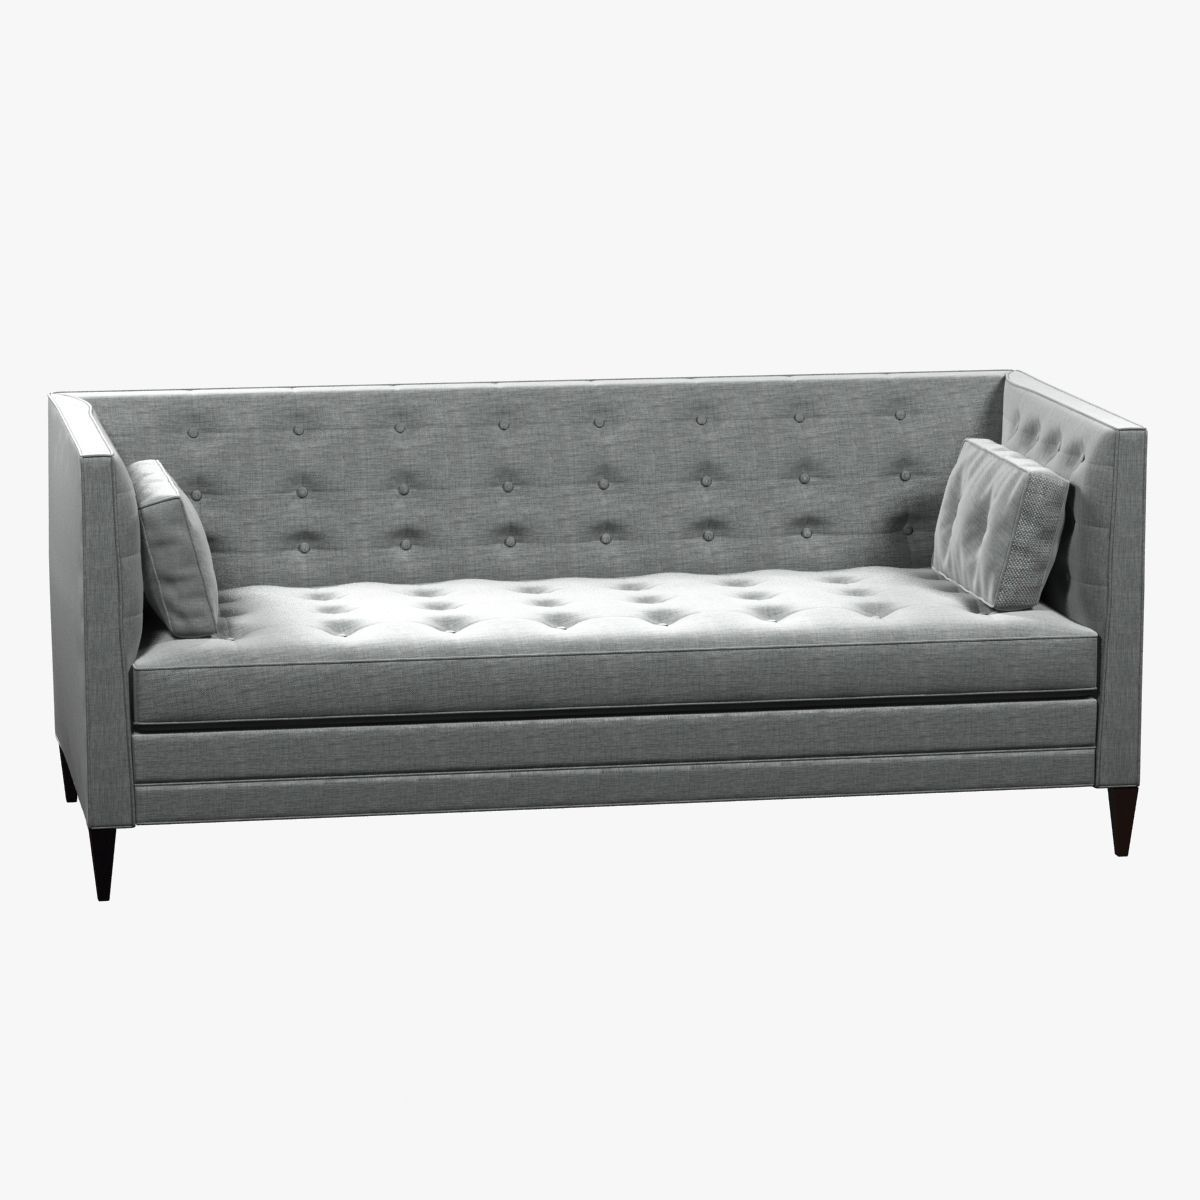 Clancy Tufted Upholstered Sofa In Vangogh Fog 3d Model Max Obj 3ds Fbx Mtl